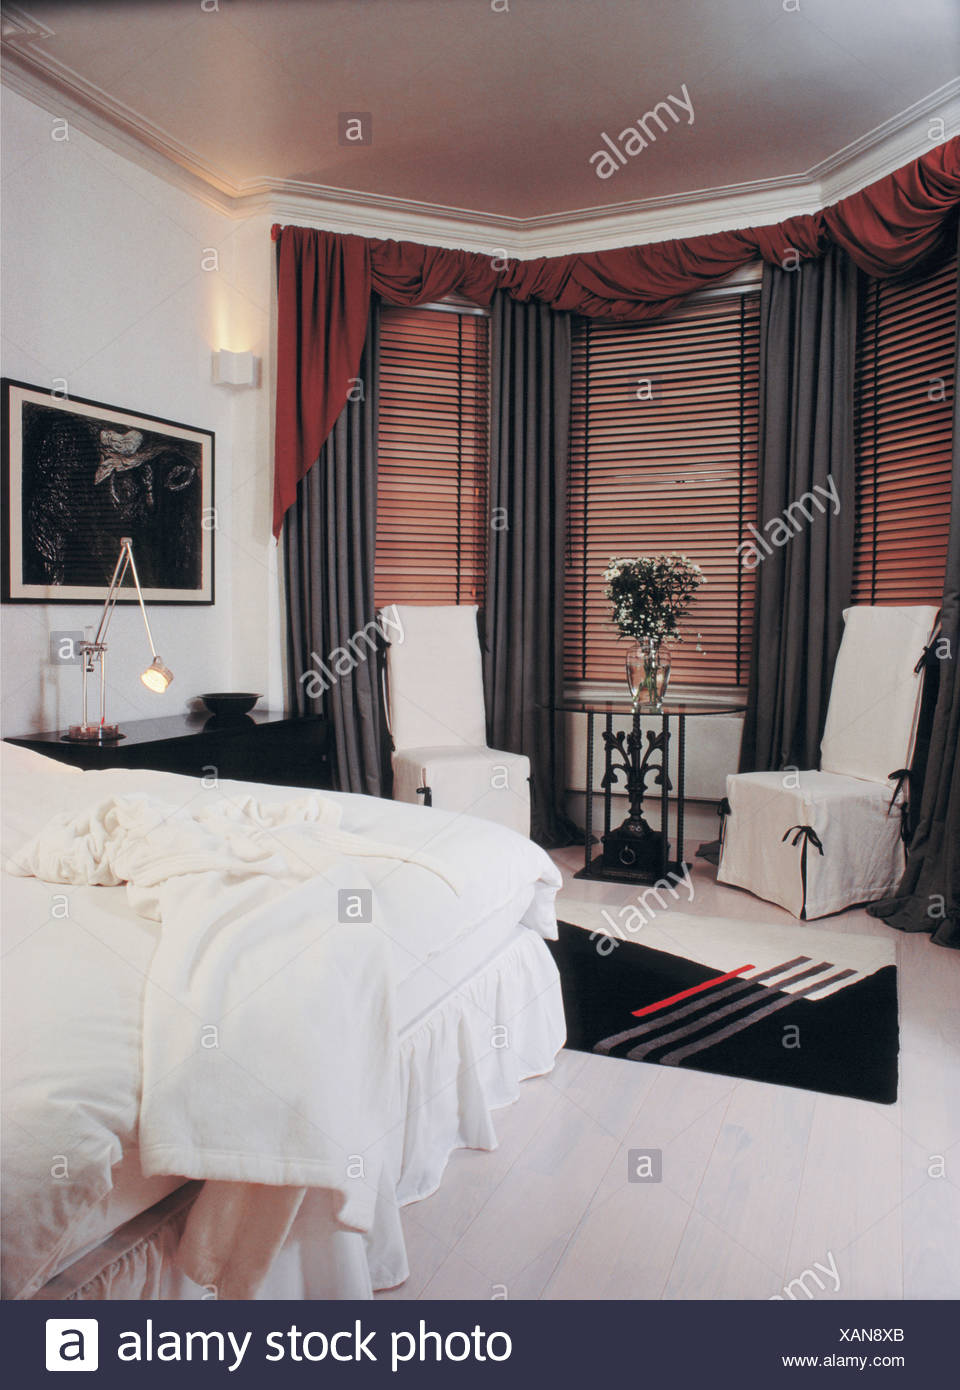 White Loosecovers On Chairs Beside Bay Window With Wooden Blinds And Black  Curtains In Bedroom With White Carpet And Bedlinen